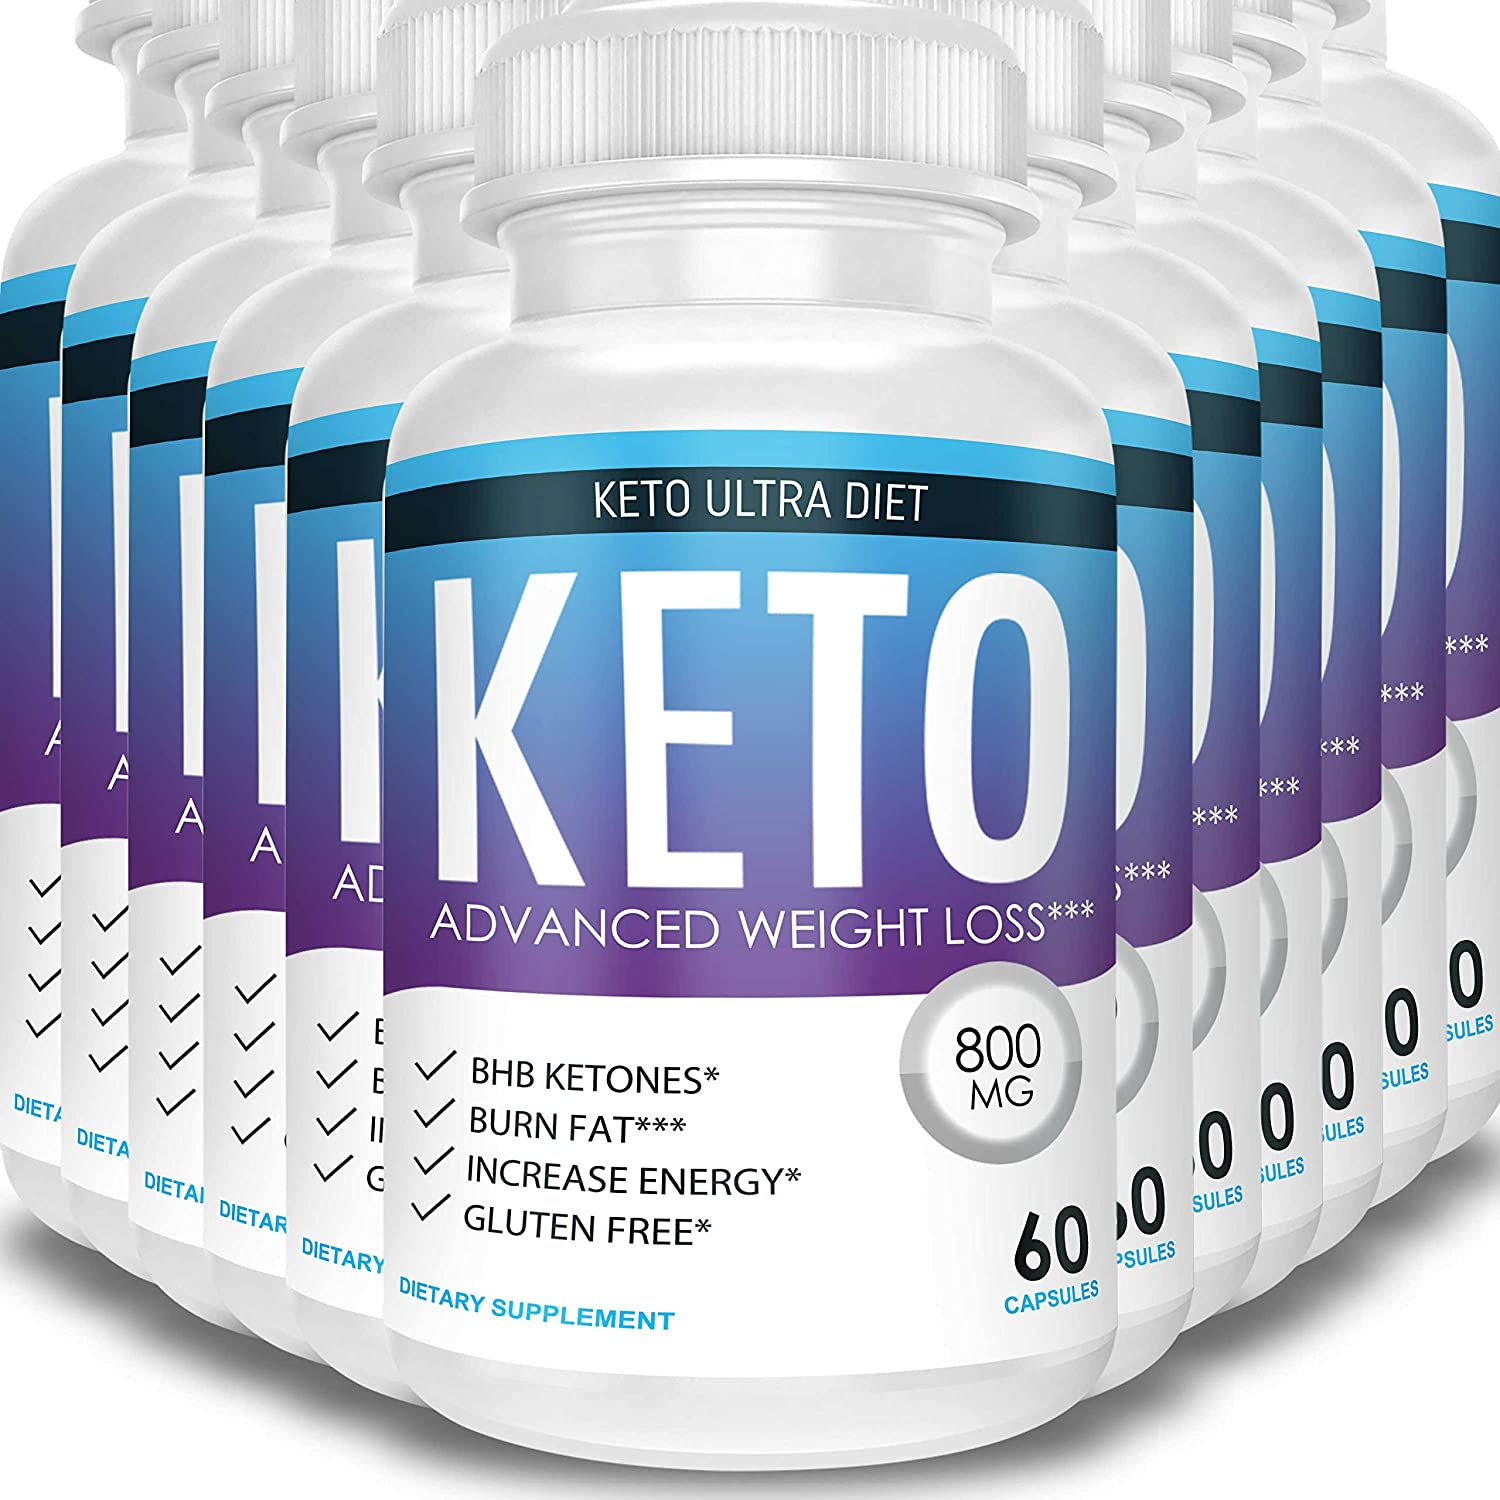 Amazon.com: Keto Ultra Diet - Advanced Weight Loss - Ketosis Supplement (3 Month Supply): Health & Personal Care